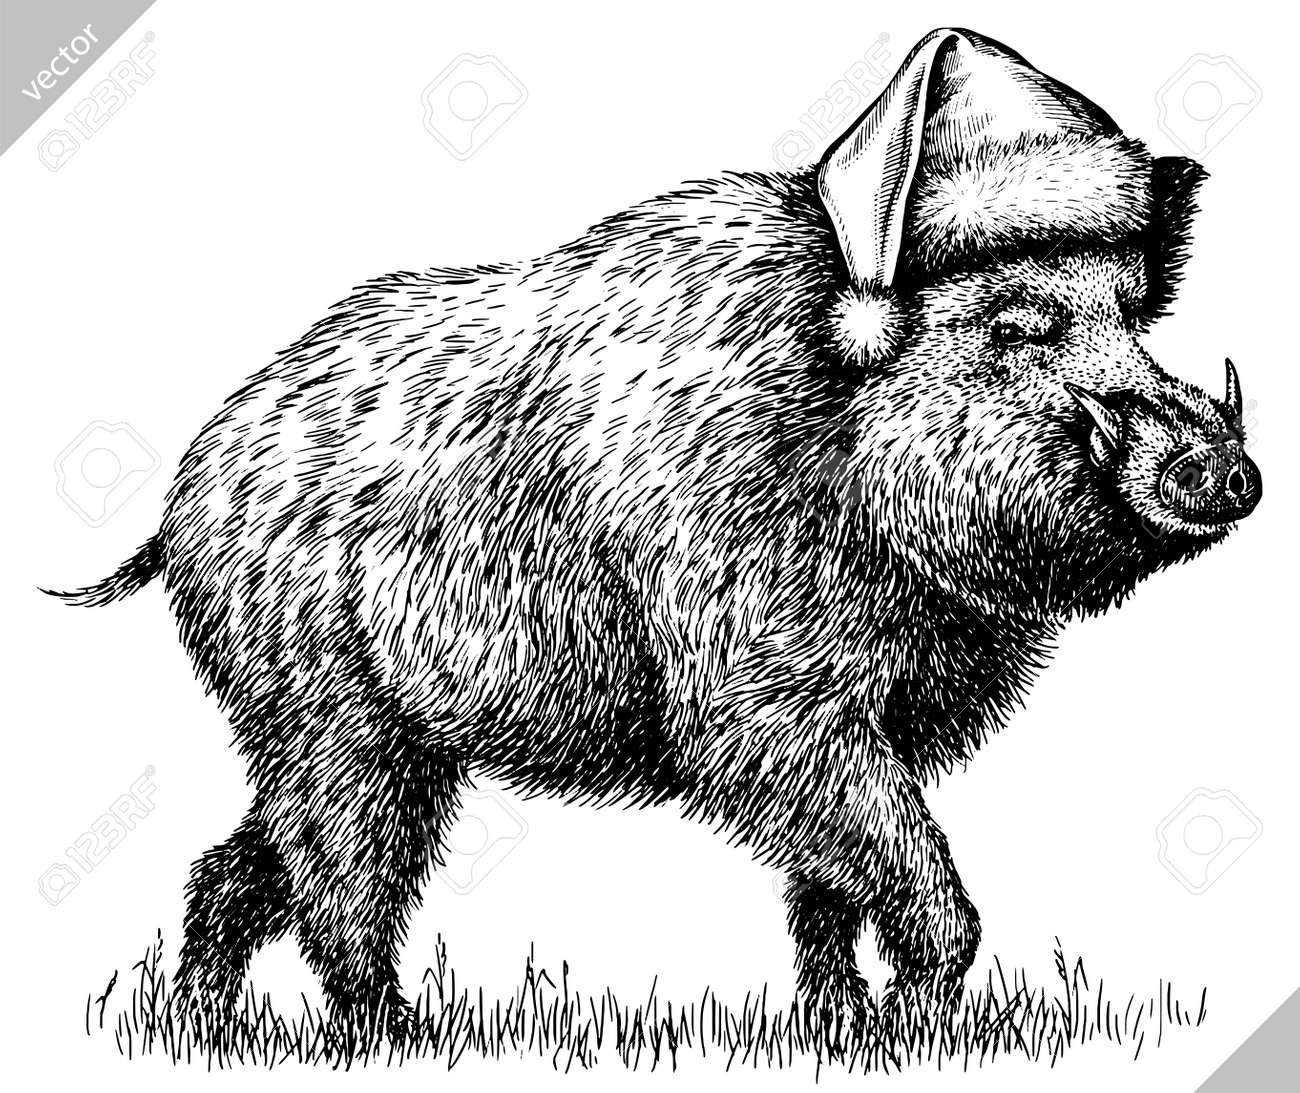 black and white engrave isolated pig vector illustration - 155802127